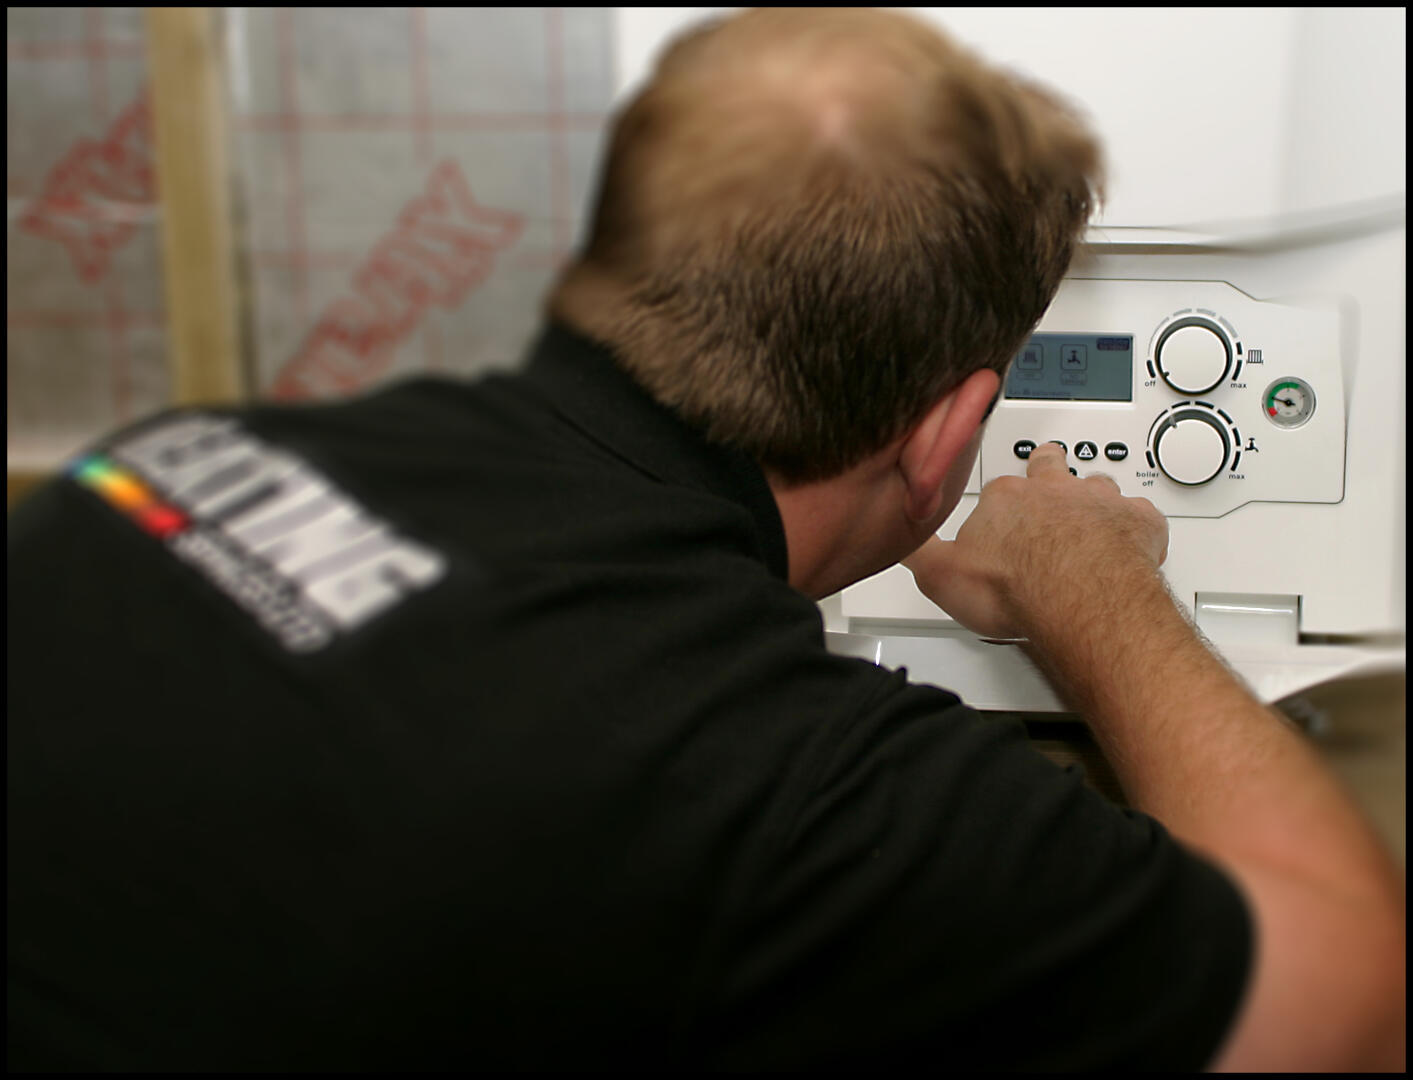 Plumbers Boiler Installation Service and Repairs and Bathroom Design and Installation by Heating Services Ltd in Oxted (5)